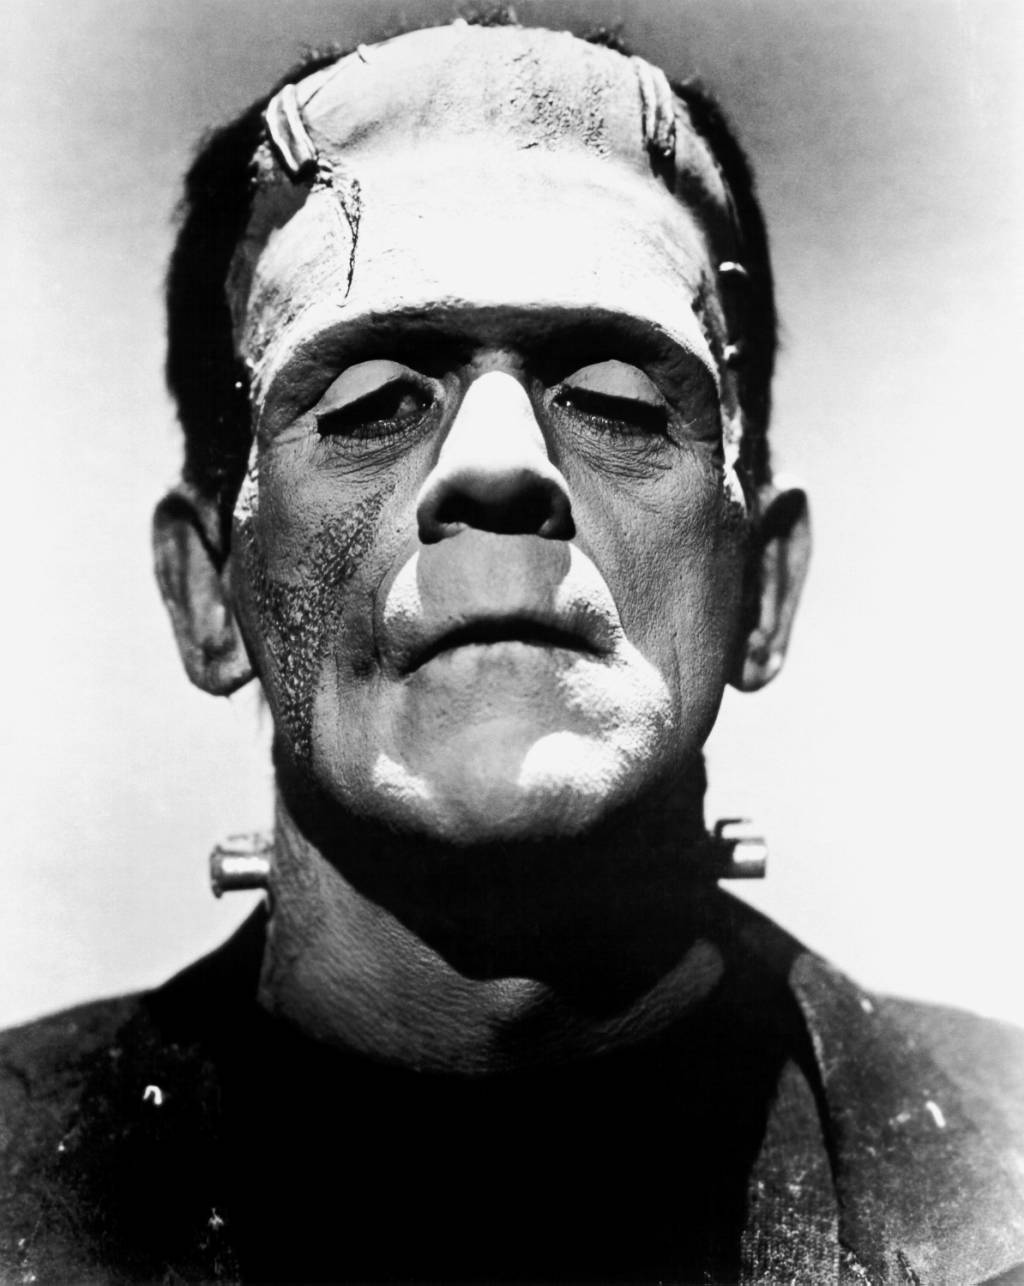 loss and isolation themes of frankenstein writework promotional photo of boris karloff from the bride of frankenstein as frankenstein s monster